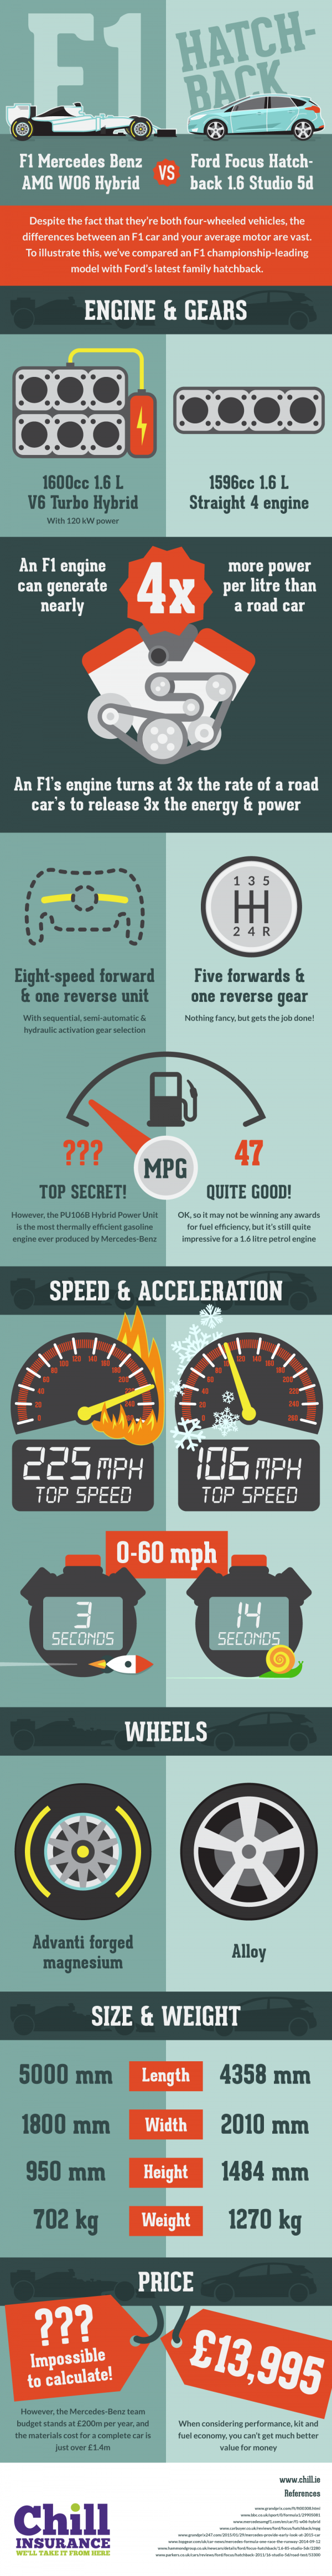 Chill_Insurance_F1-vs-Roadcar_infographic